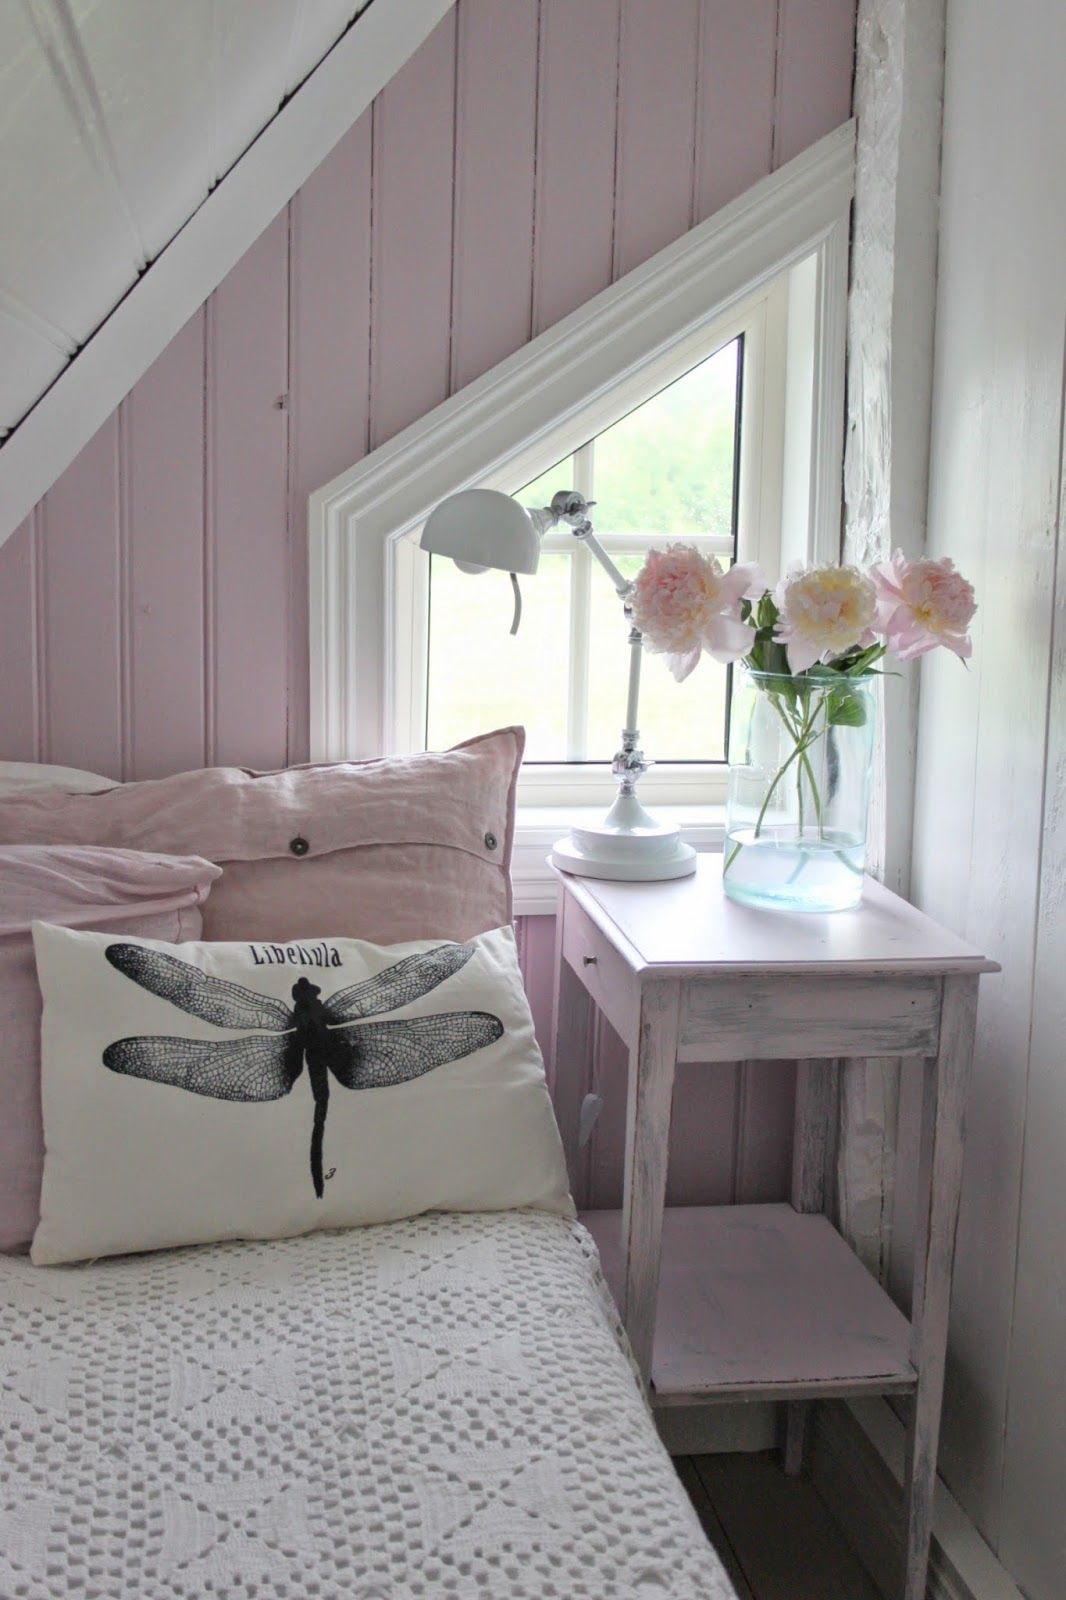 Wohnzimmer Wanddekoration So Soft And Ethereal Looking Interior Design